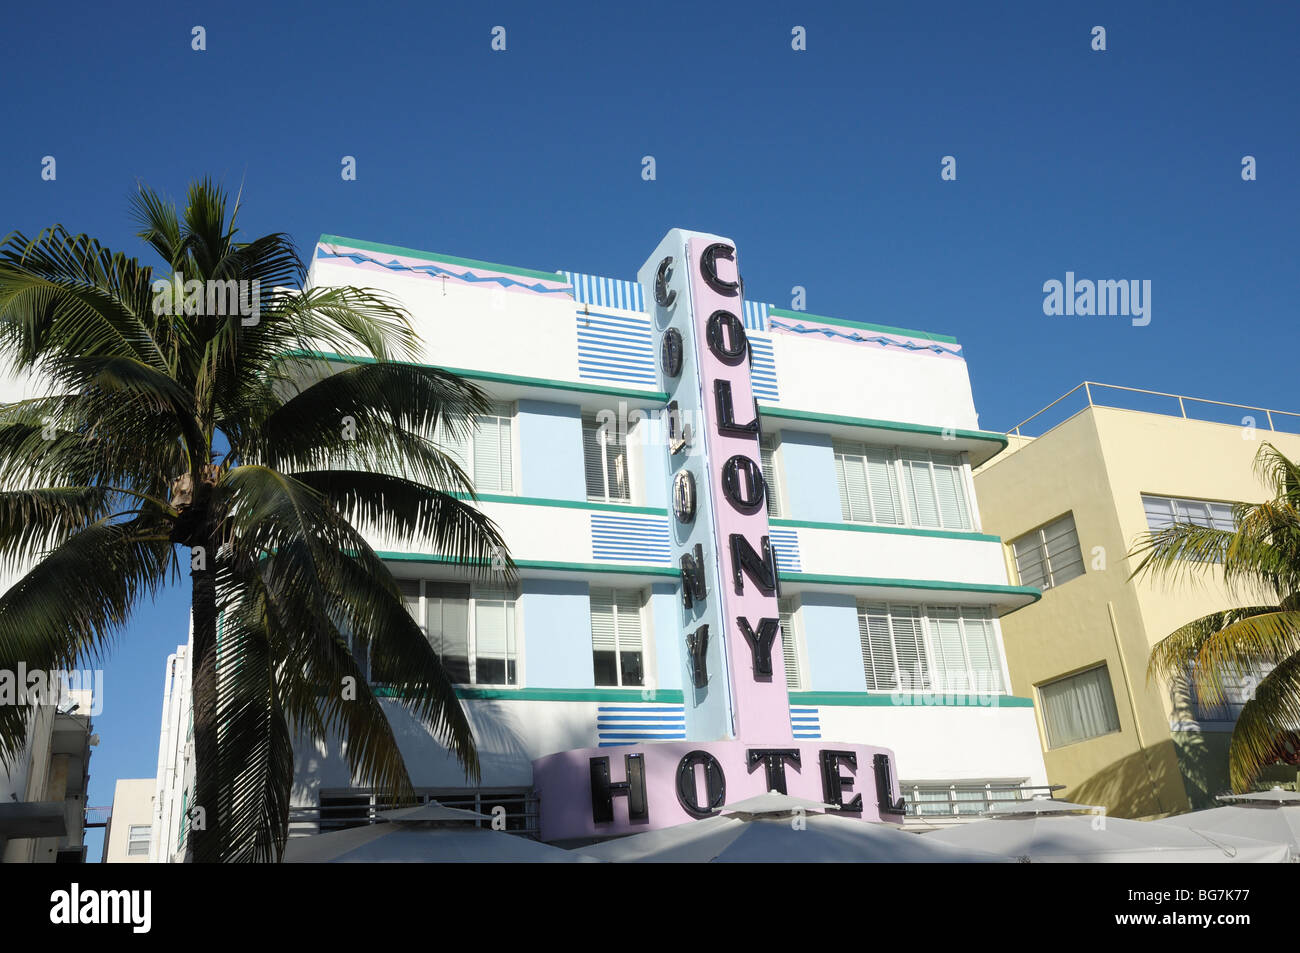 Colony Hotel in Miami South Beach, Florida USA - Stock Image